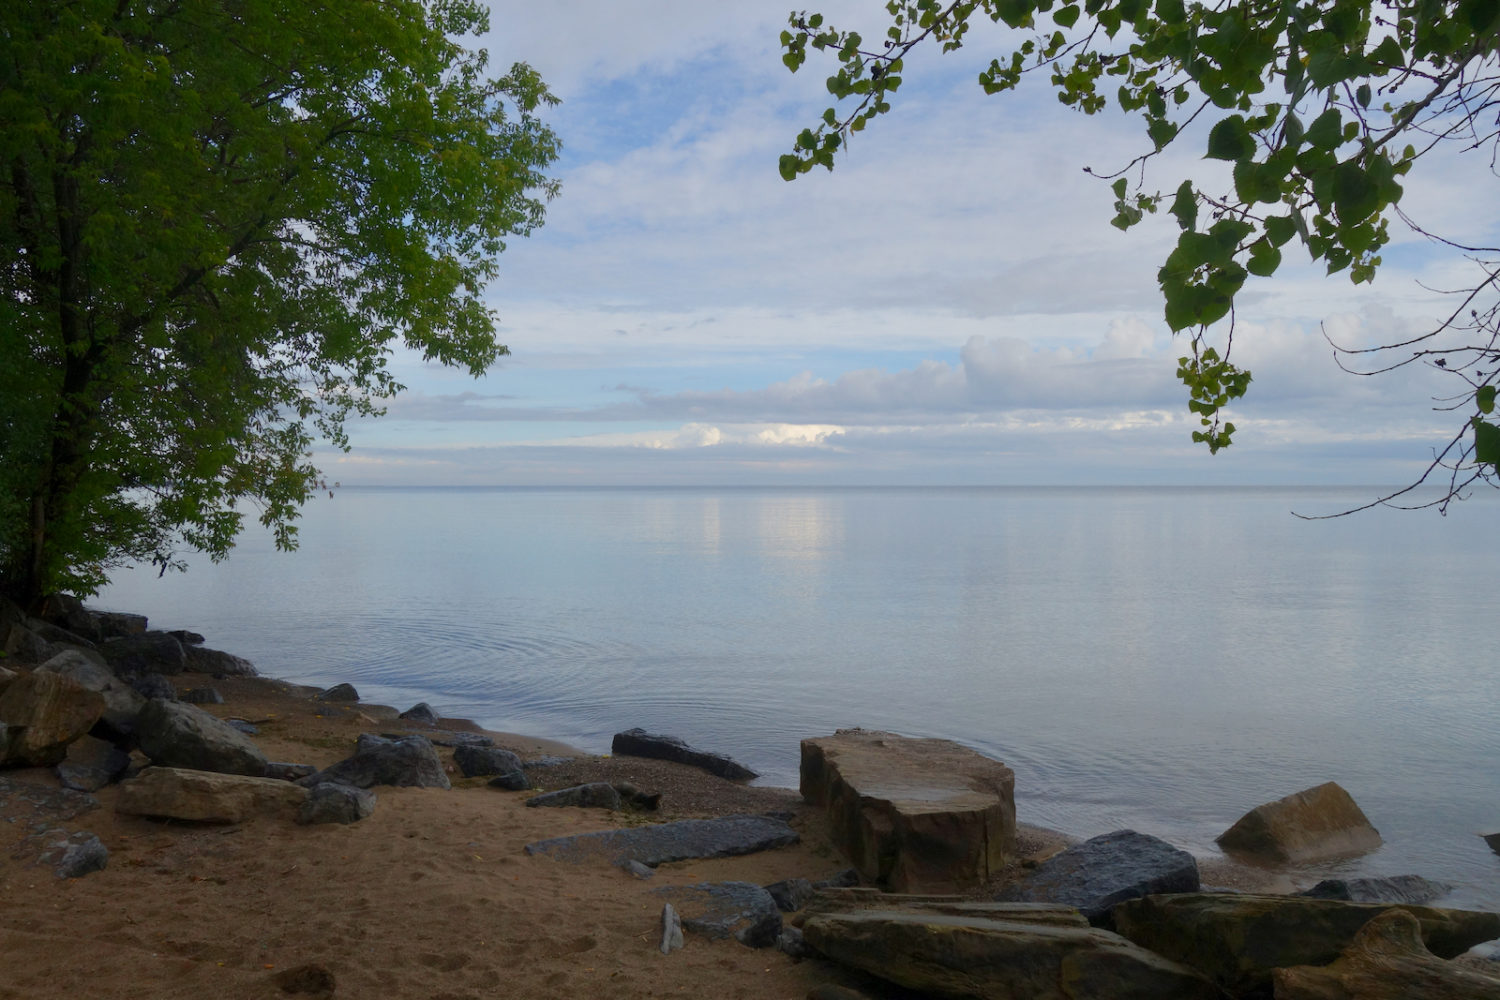 Durand Beach early this morning just after the rain.